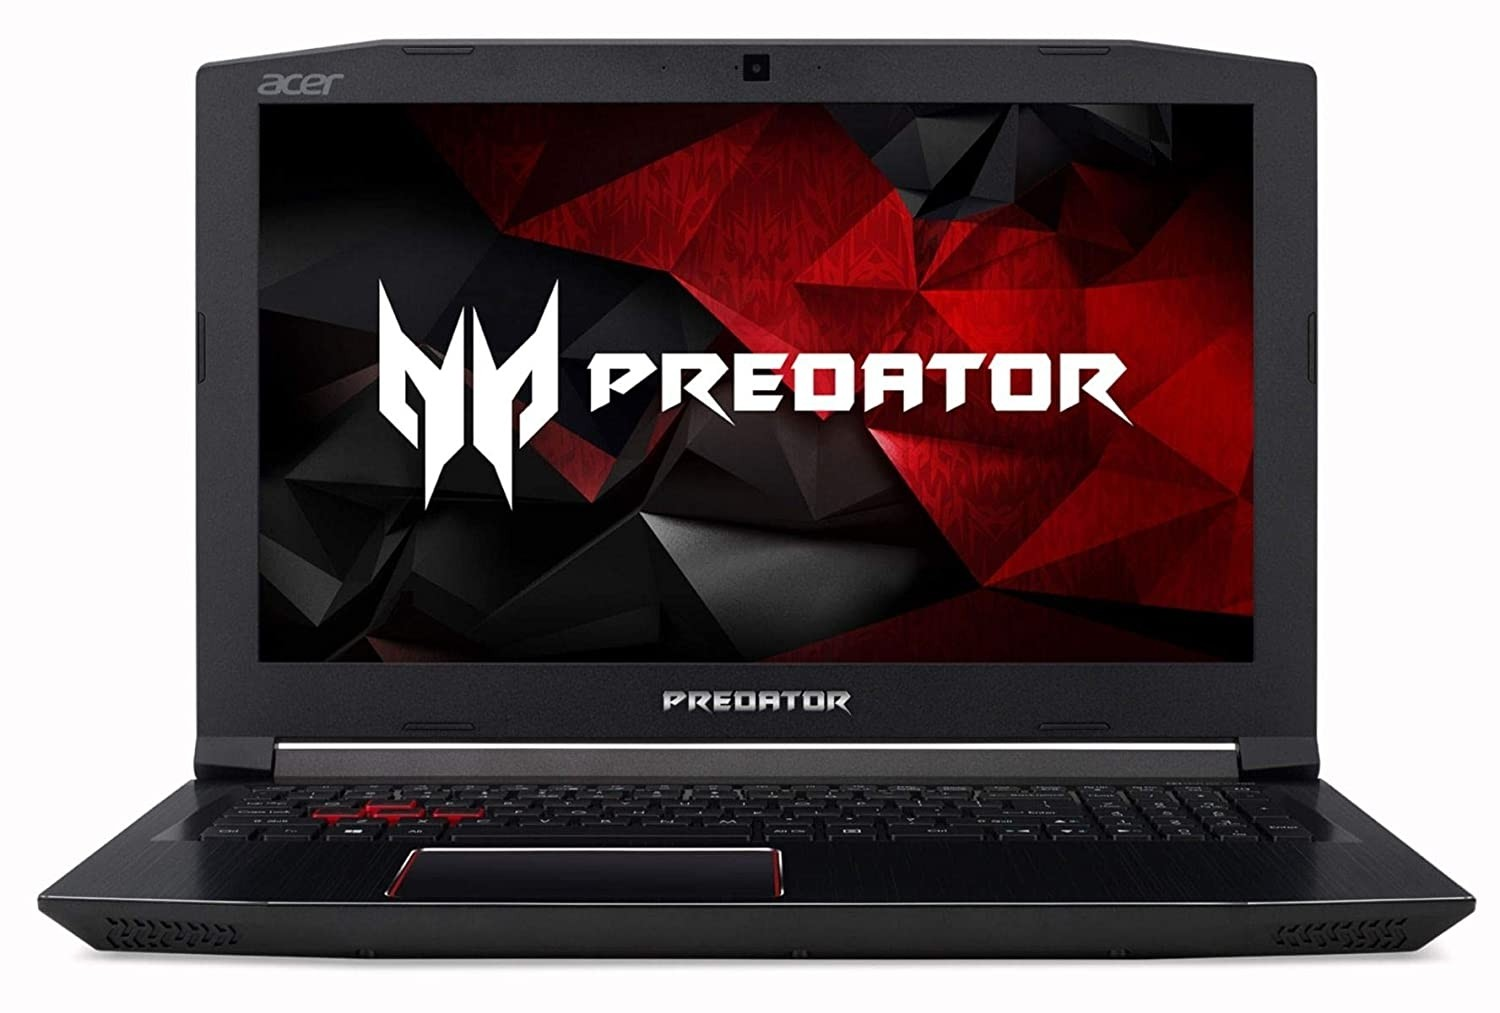 Refurbished laptops & desktops - Acer Predator Helios 300 Core I7 8TH Gen - (16 GB/1 TB HDD/128 GB SSD/Windows 10 Home/6 GB Graphics) Ph315-51-73Bh Gaming Laptop